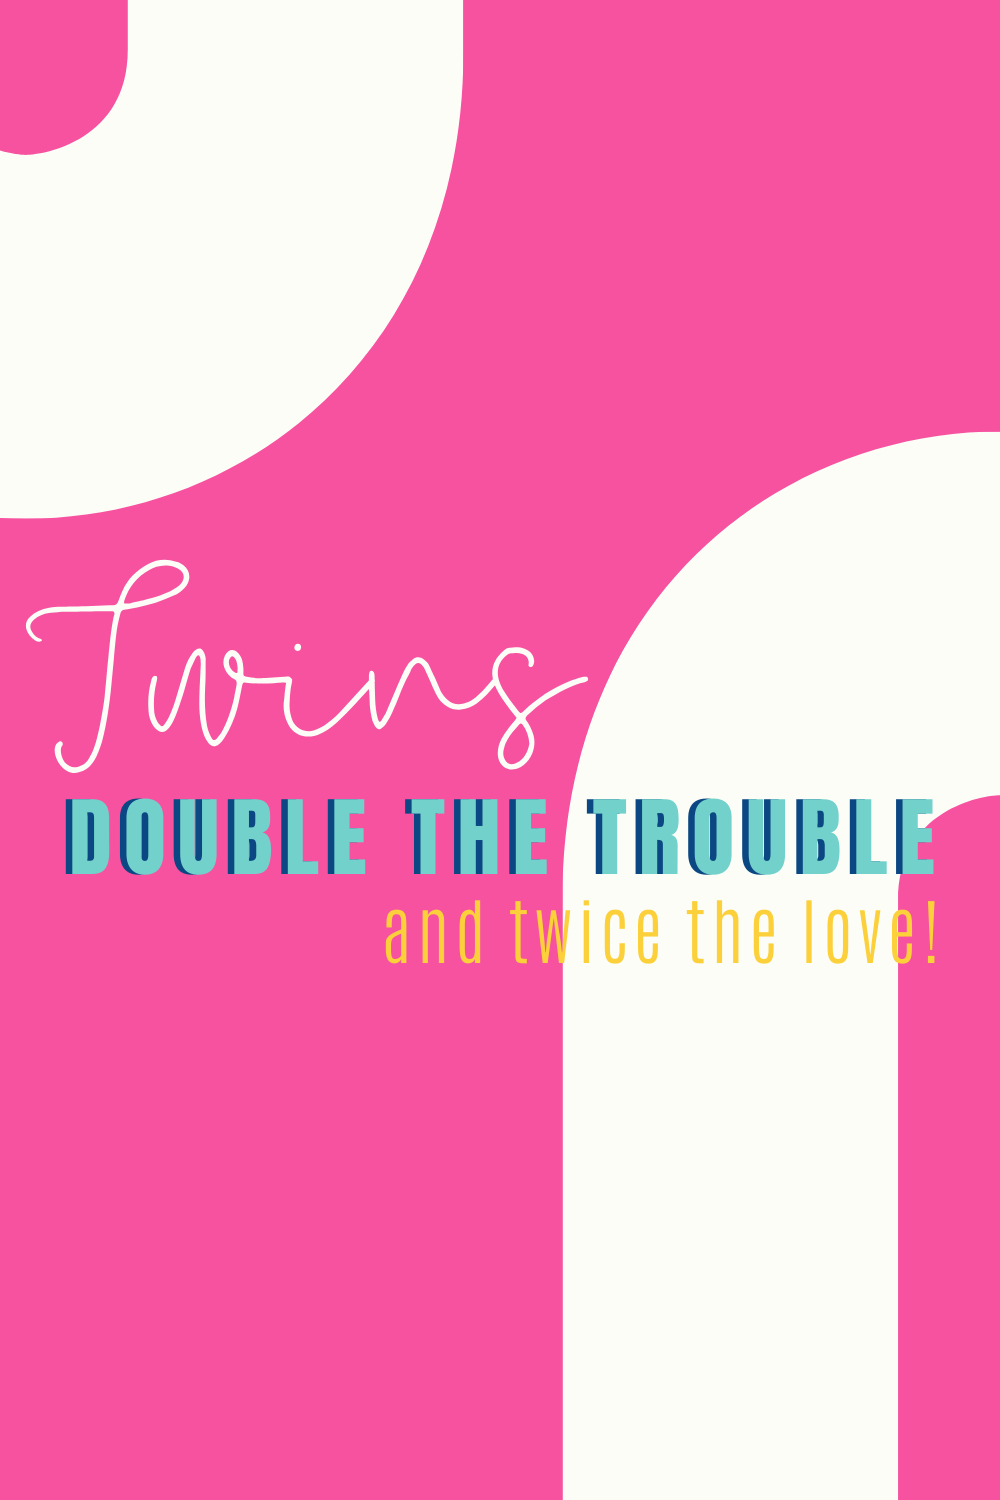 43 twins birthday quotes to double the